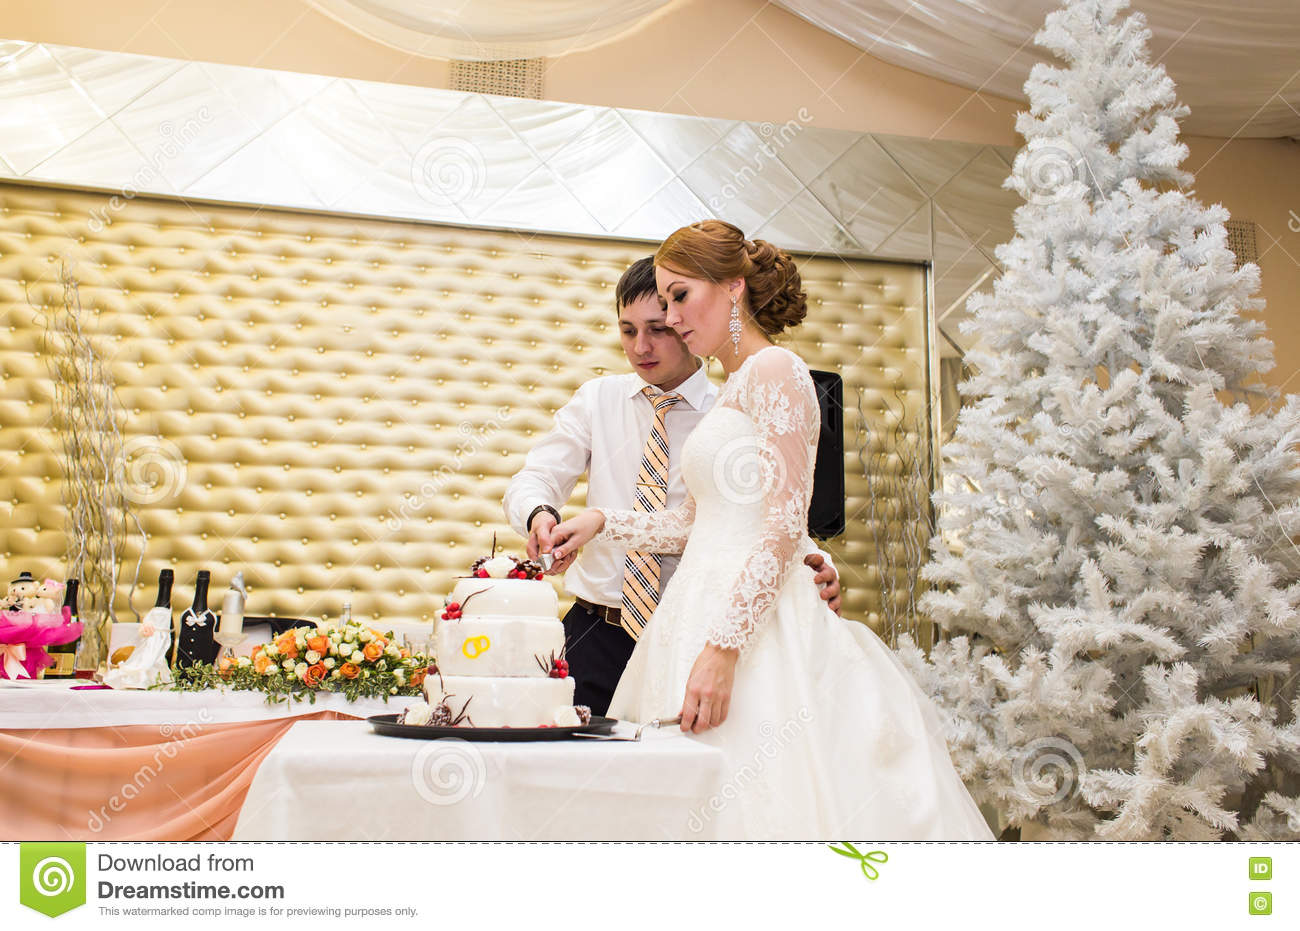 dream interpretation eating wedding cake groom cake stock photos royalty free images 13730